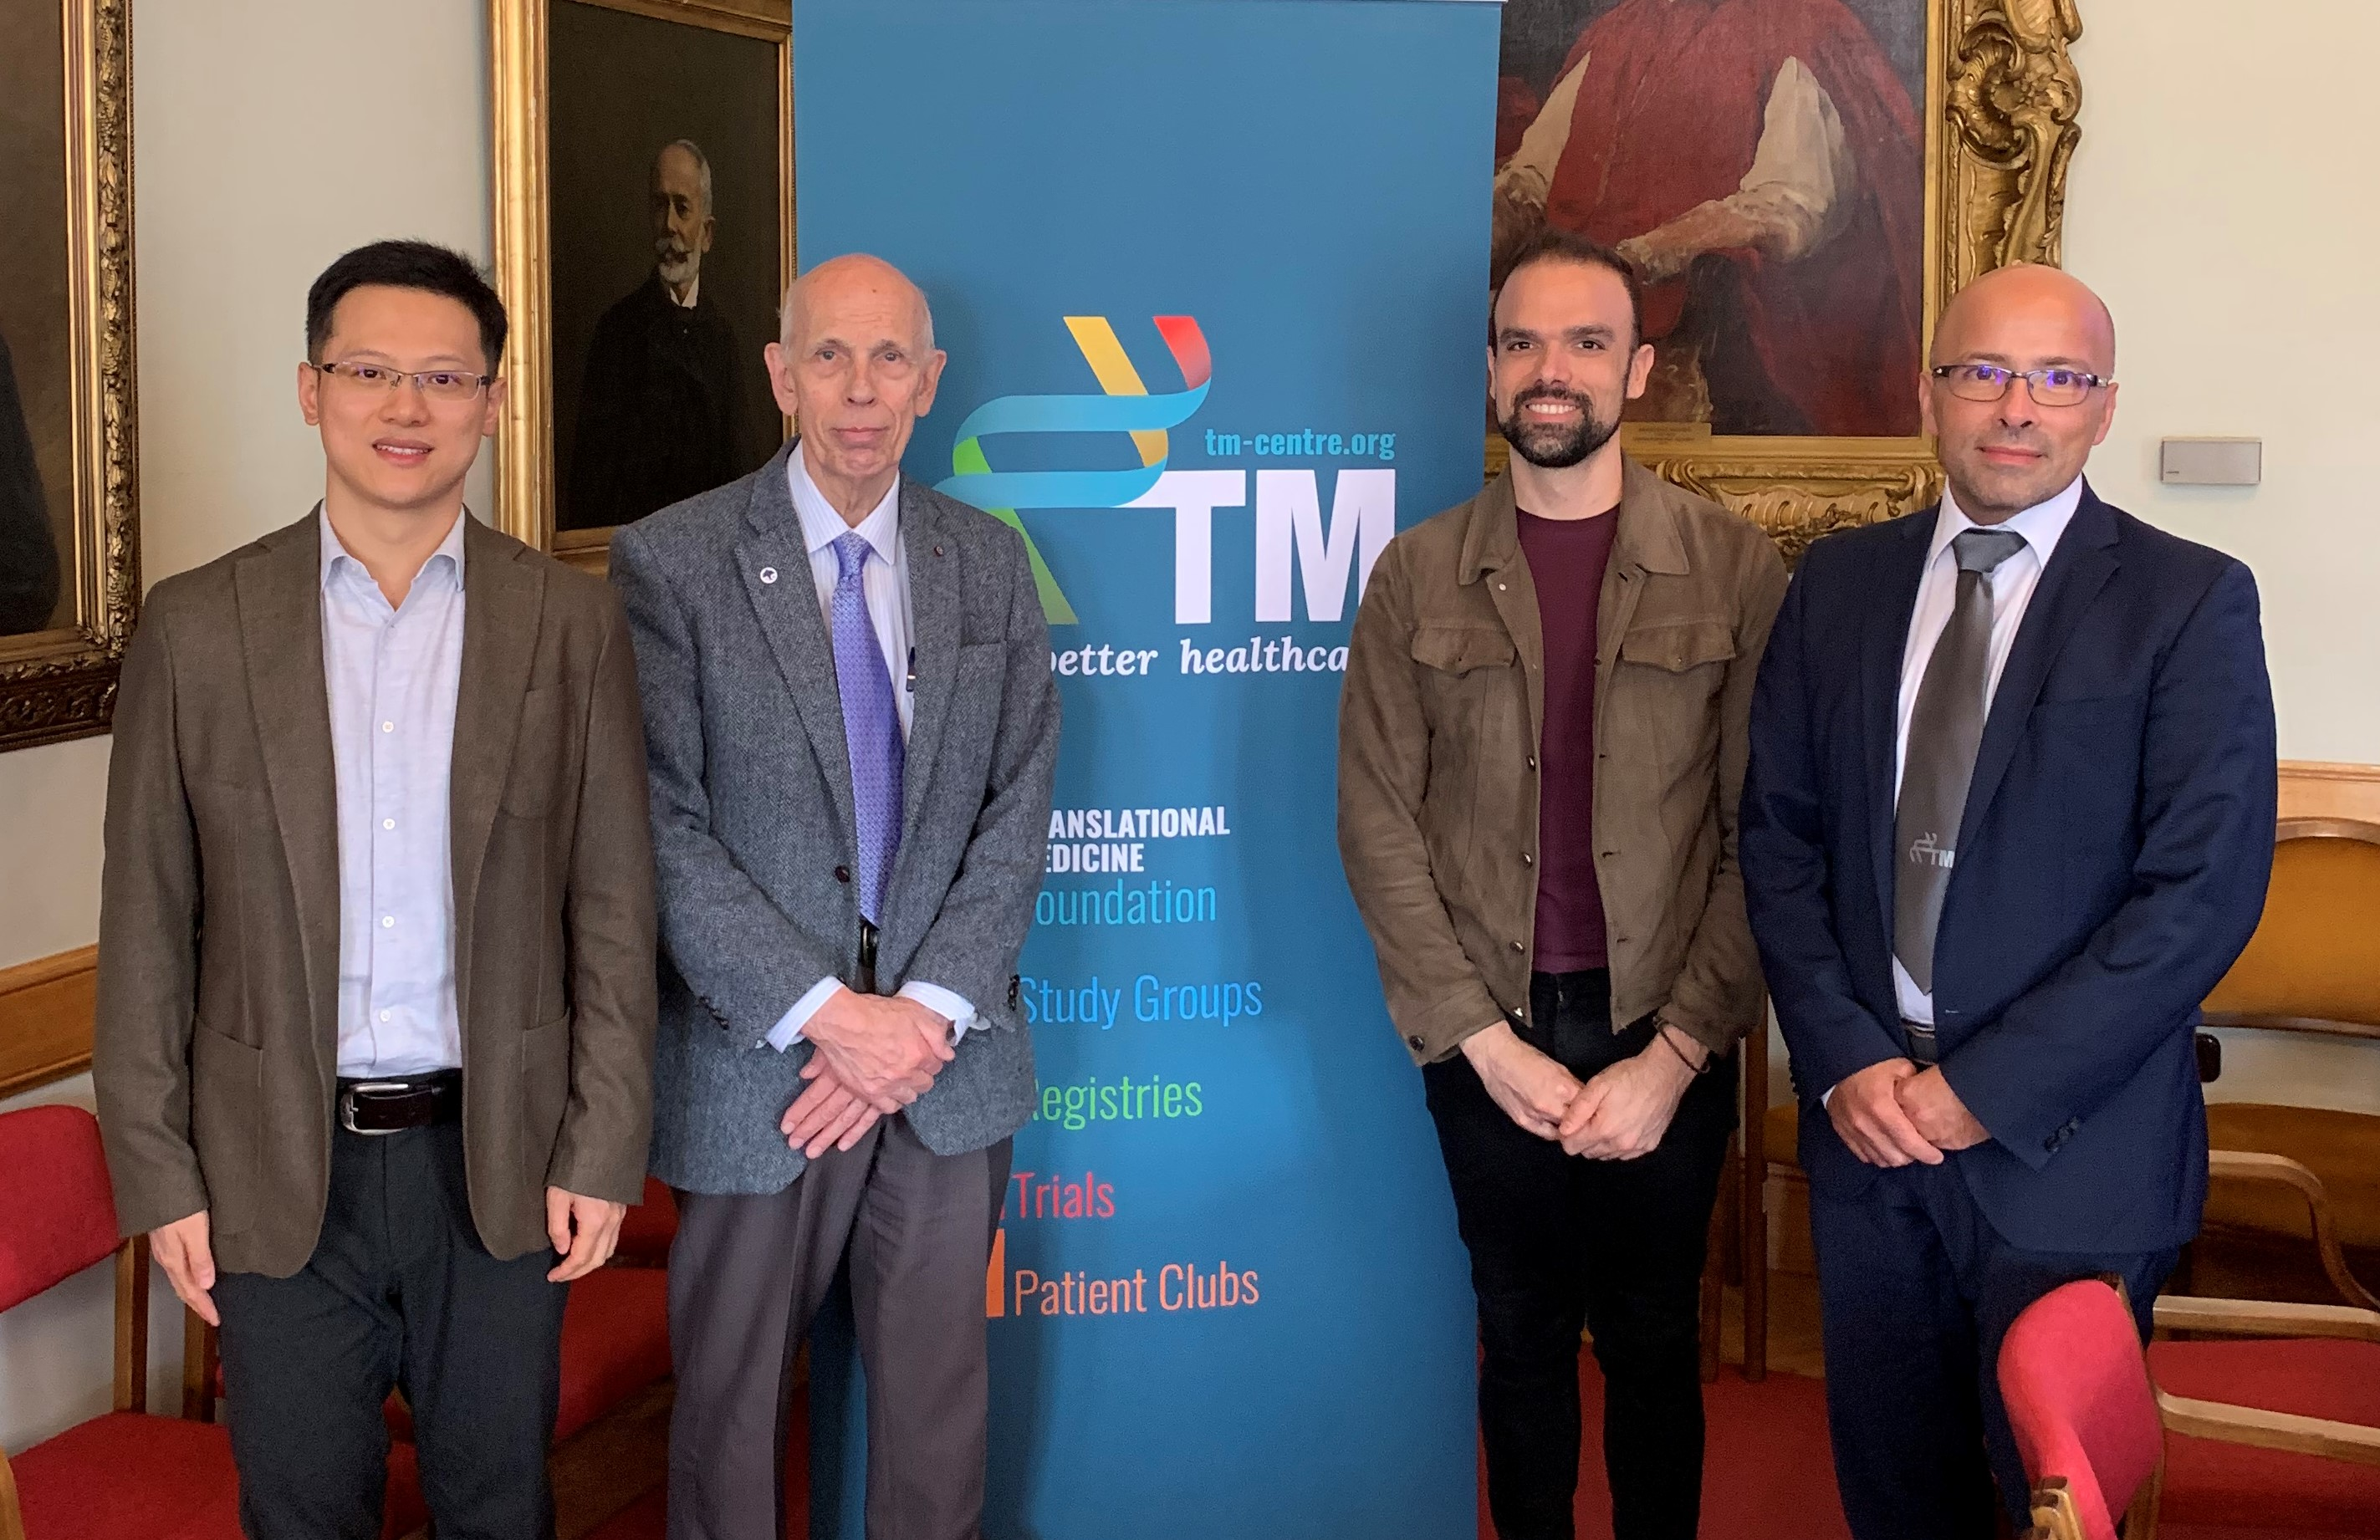 Translational Medicine Conference at the Hungarian Academy of Sciences  From left to right: Dr Shuang Peng, Professor Ole Petersen CBE MAE FRS Dr Joao Monterio and Professor Peter Hegyi MAE